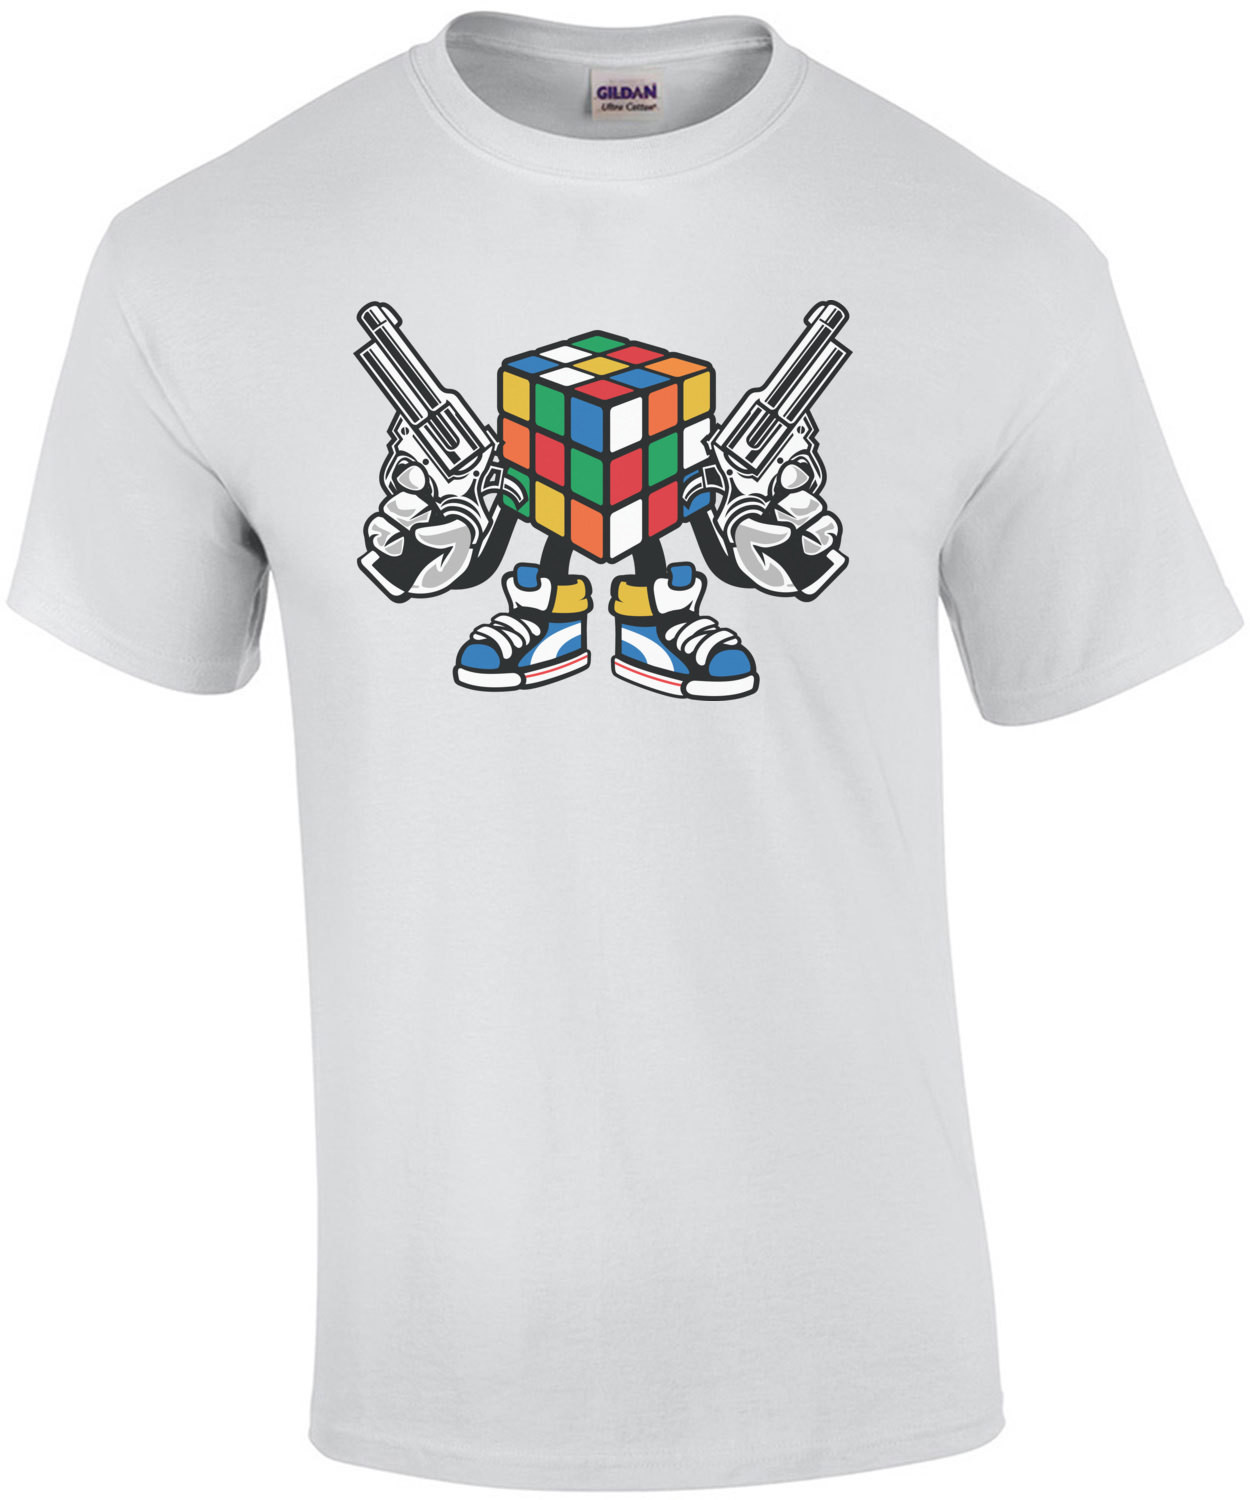 Retro Killer Rubix Cube T-Shirt